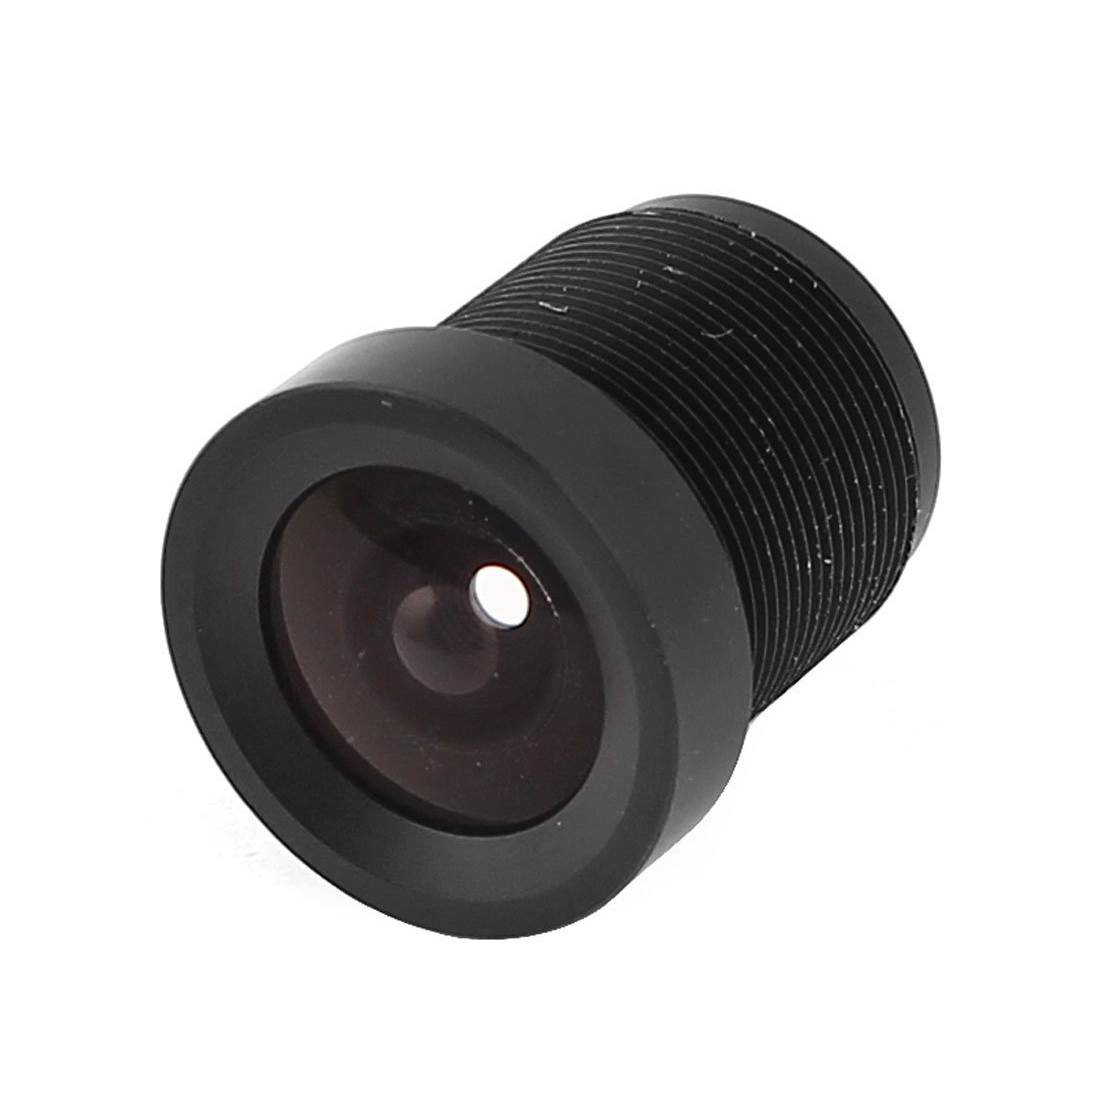 2 Packs M12 thread Mount 3.6mm focal length F2.0 IR Lens for CCTV CCD Camera doumoo 330 330 mm long focal length 2000 mm fresnel lens for solar energy collection plastic optical fresnel lens pmma material